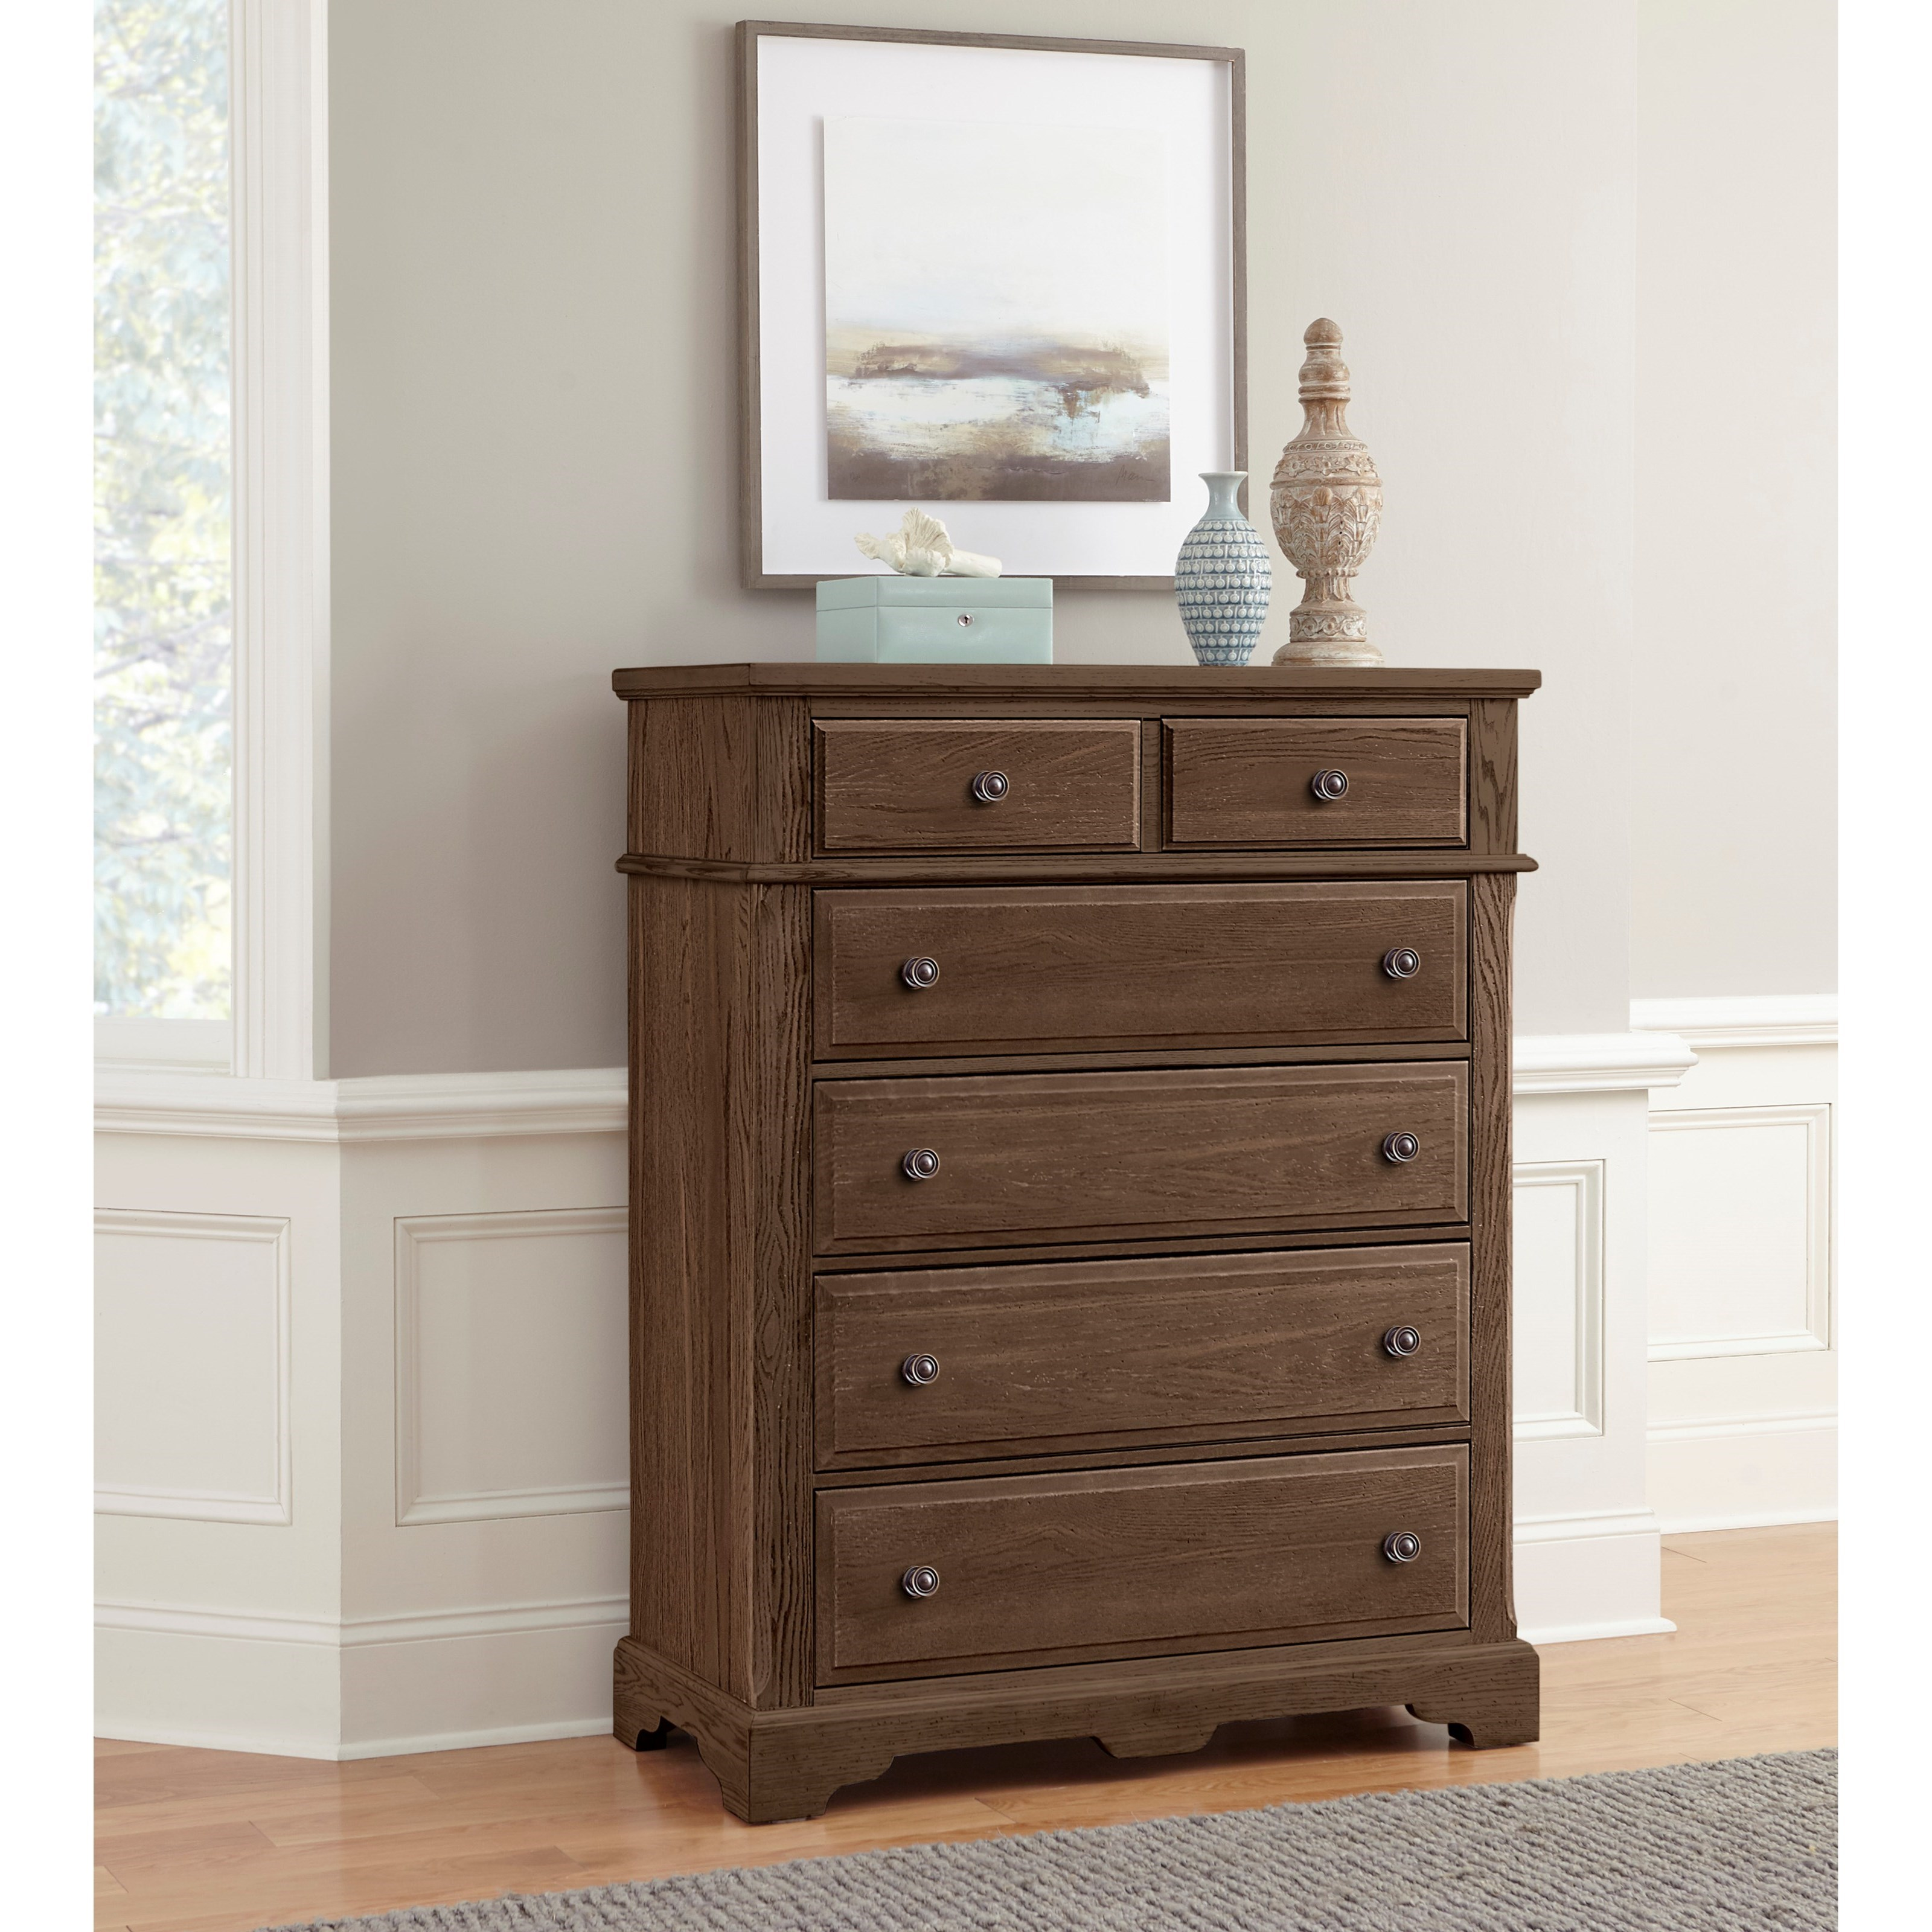 Heritage Chest of Drawers by Artisan & Post at Northeast Factory Direct